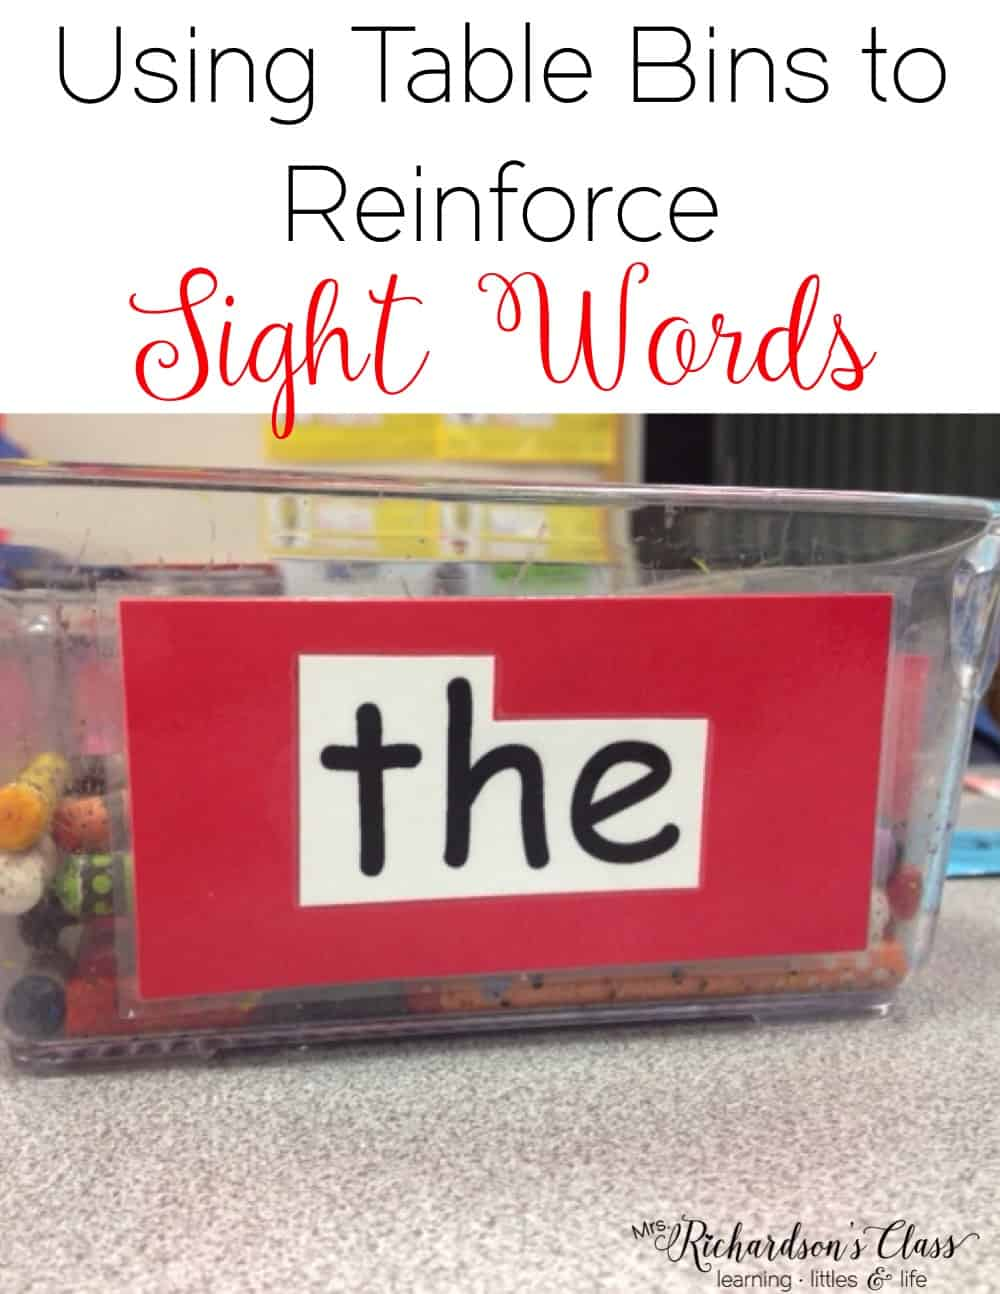 Get some extra sight word practice in with this simple activity! It's basically free and will work for preschool, kindergarten, and first grade students. I love how she used the table bins! #sightwords #sightwordactivities #preschool #kindergarten #firstgrade #homeschool #mrsrichardsonsclass